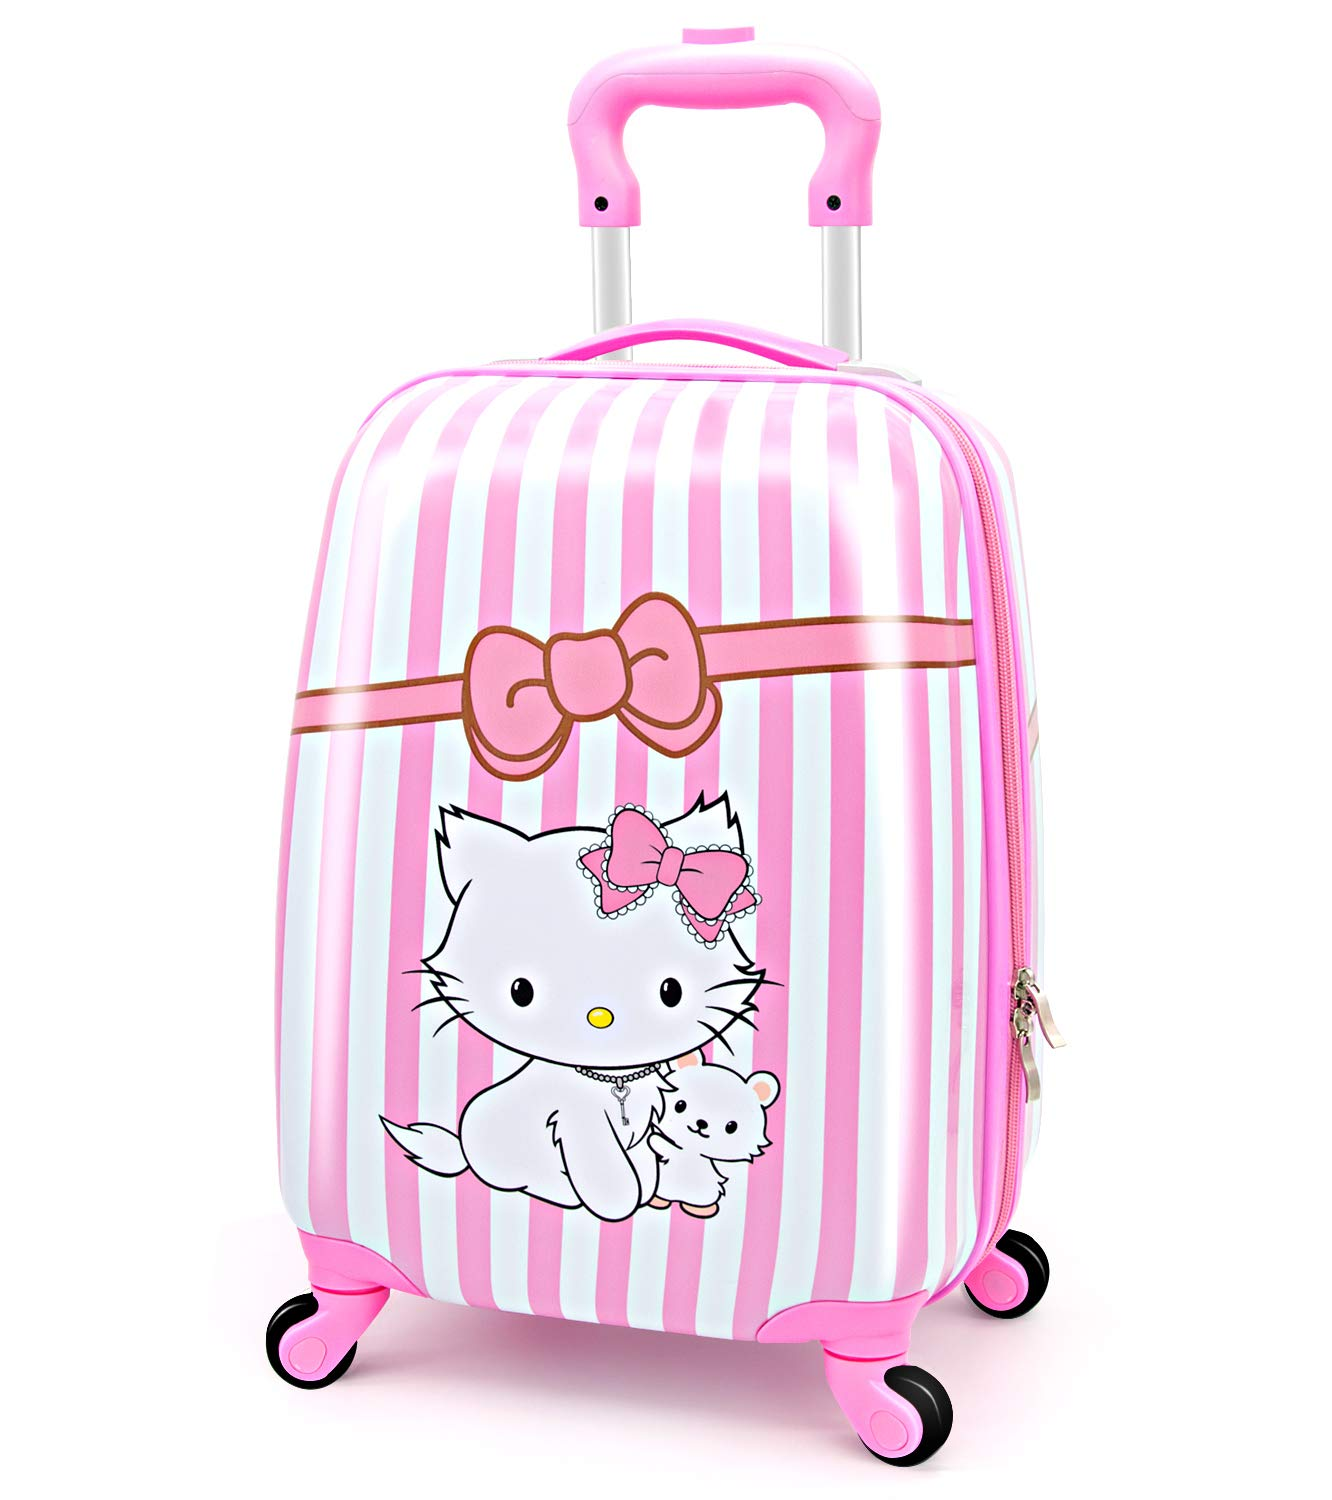 LeLeTian Kids Luggage Hardshell Lightweight Adjustable Handle Rolling Carry On Suitcase For Age 2+ Pink Cat